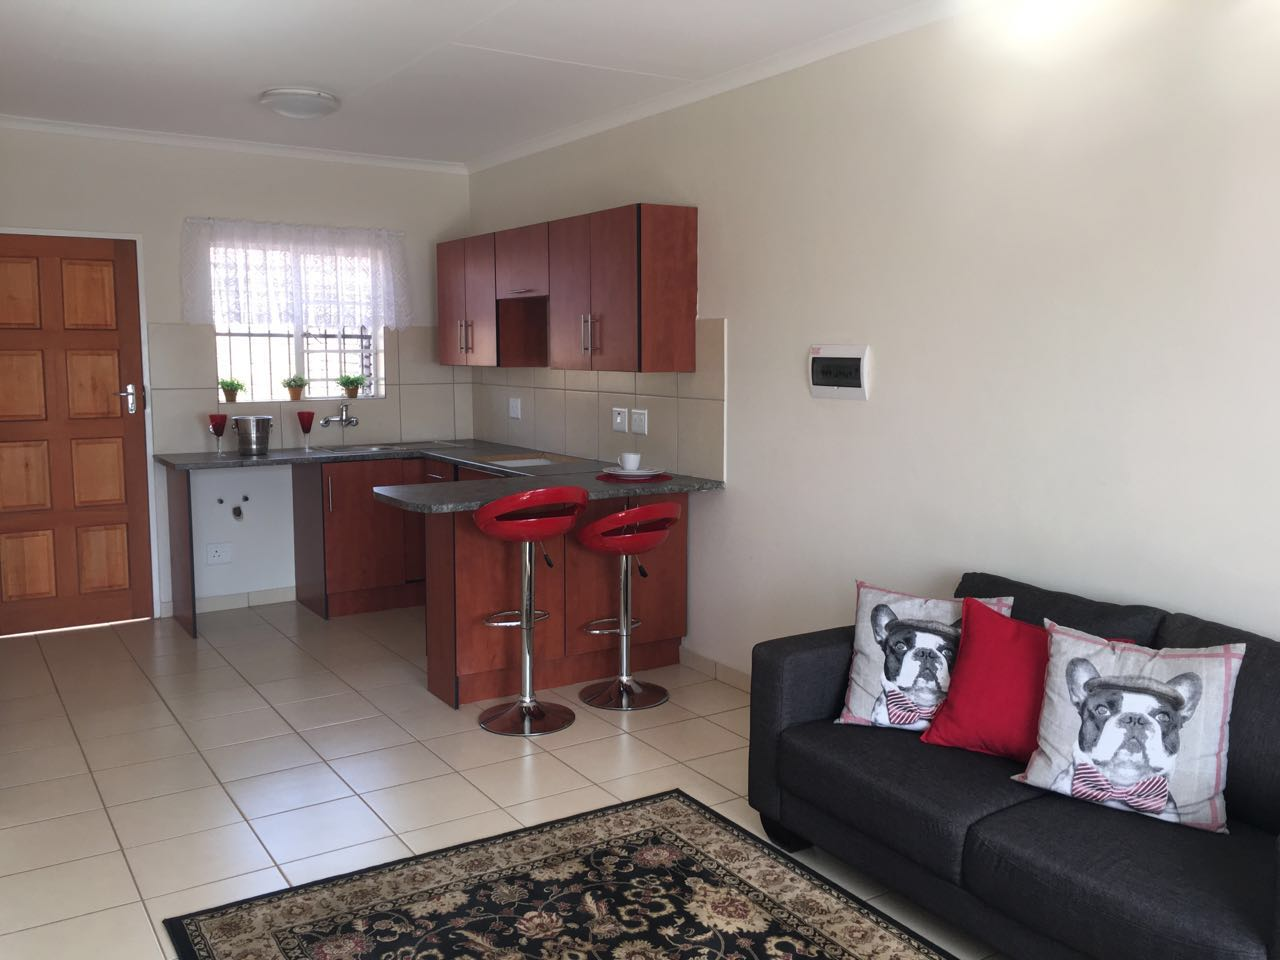 Spacious 1 Bedroom House in Secure Estate with Own Private Garden